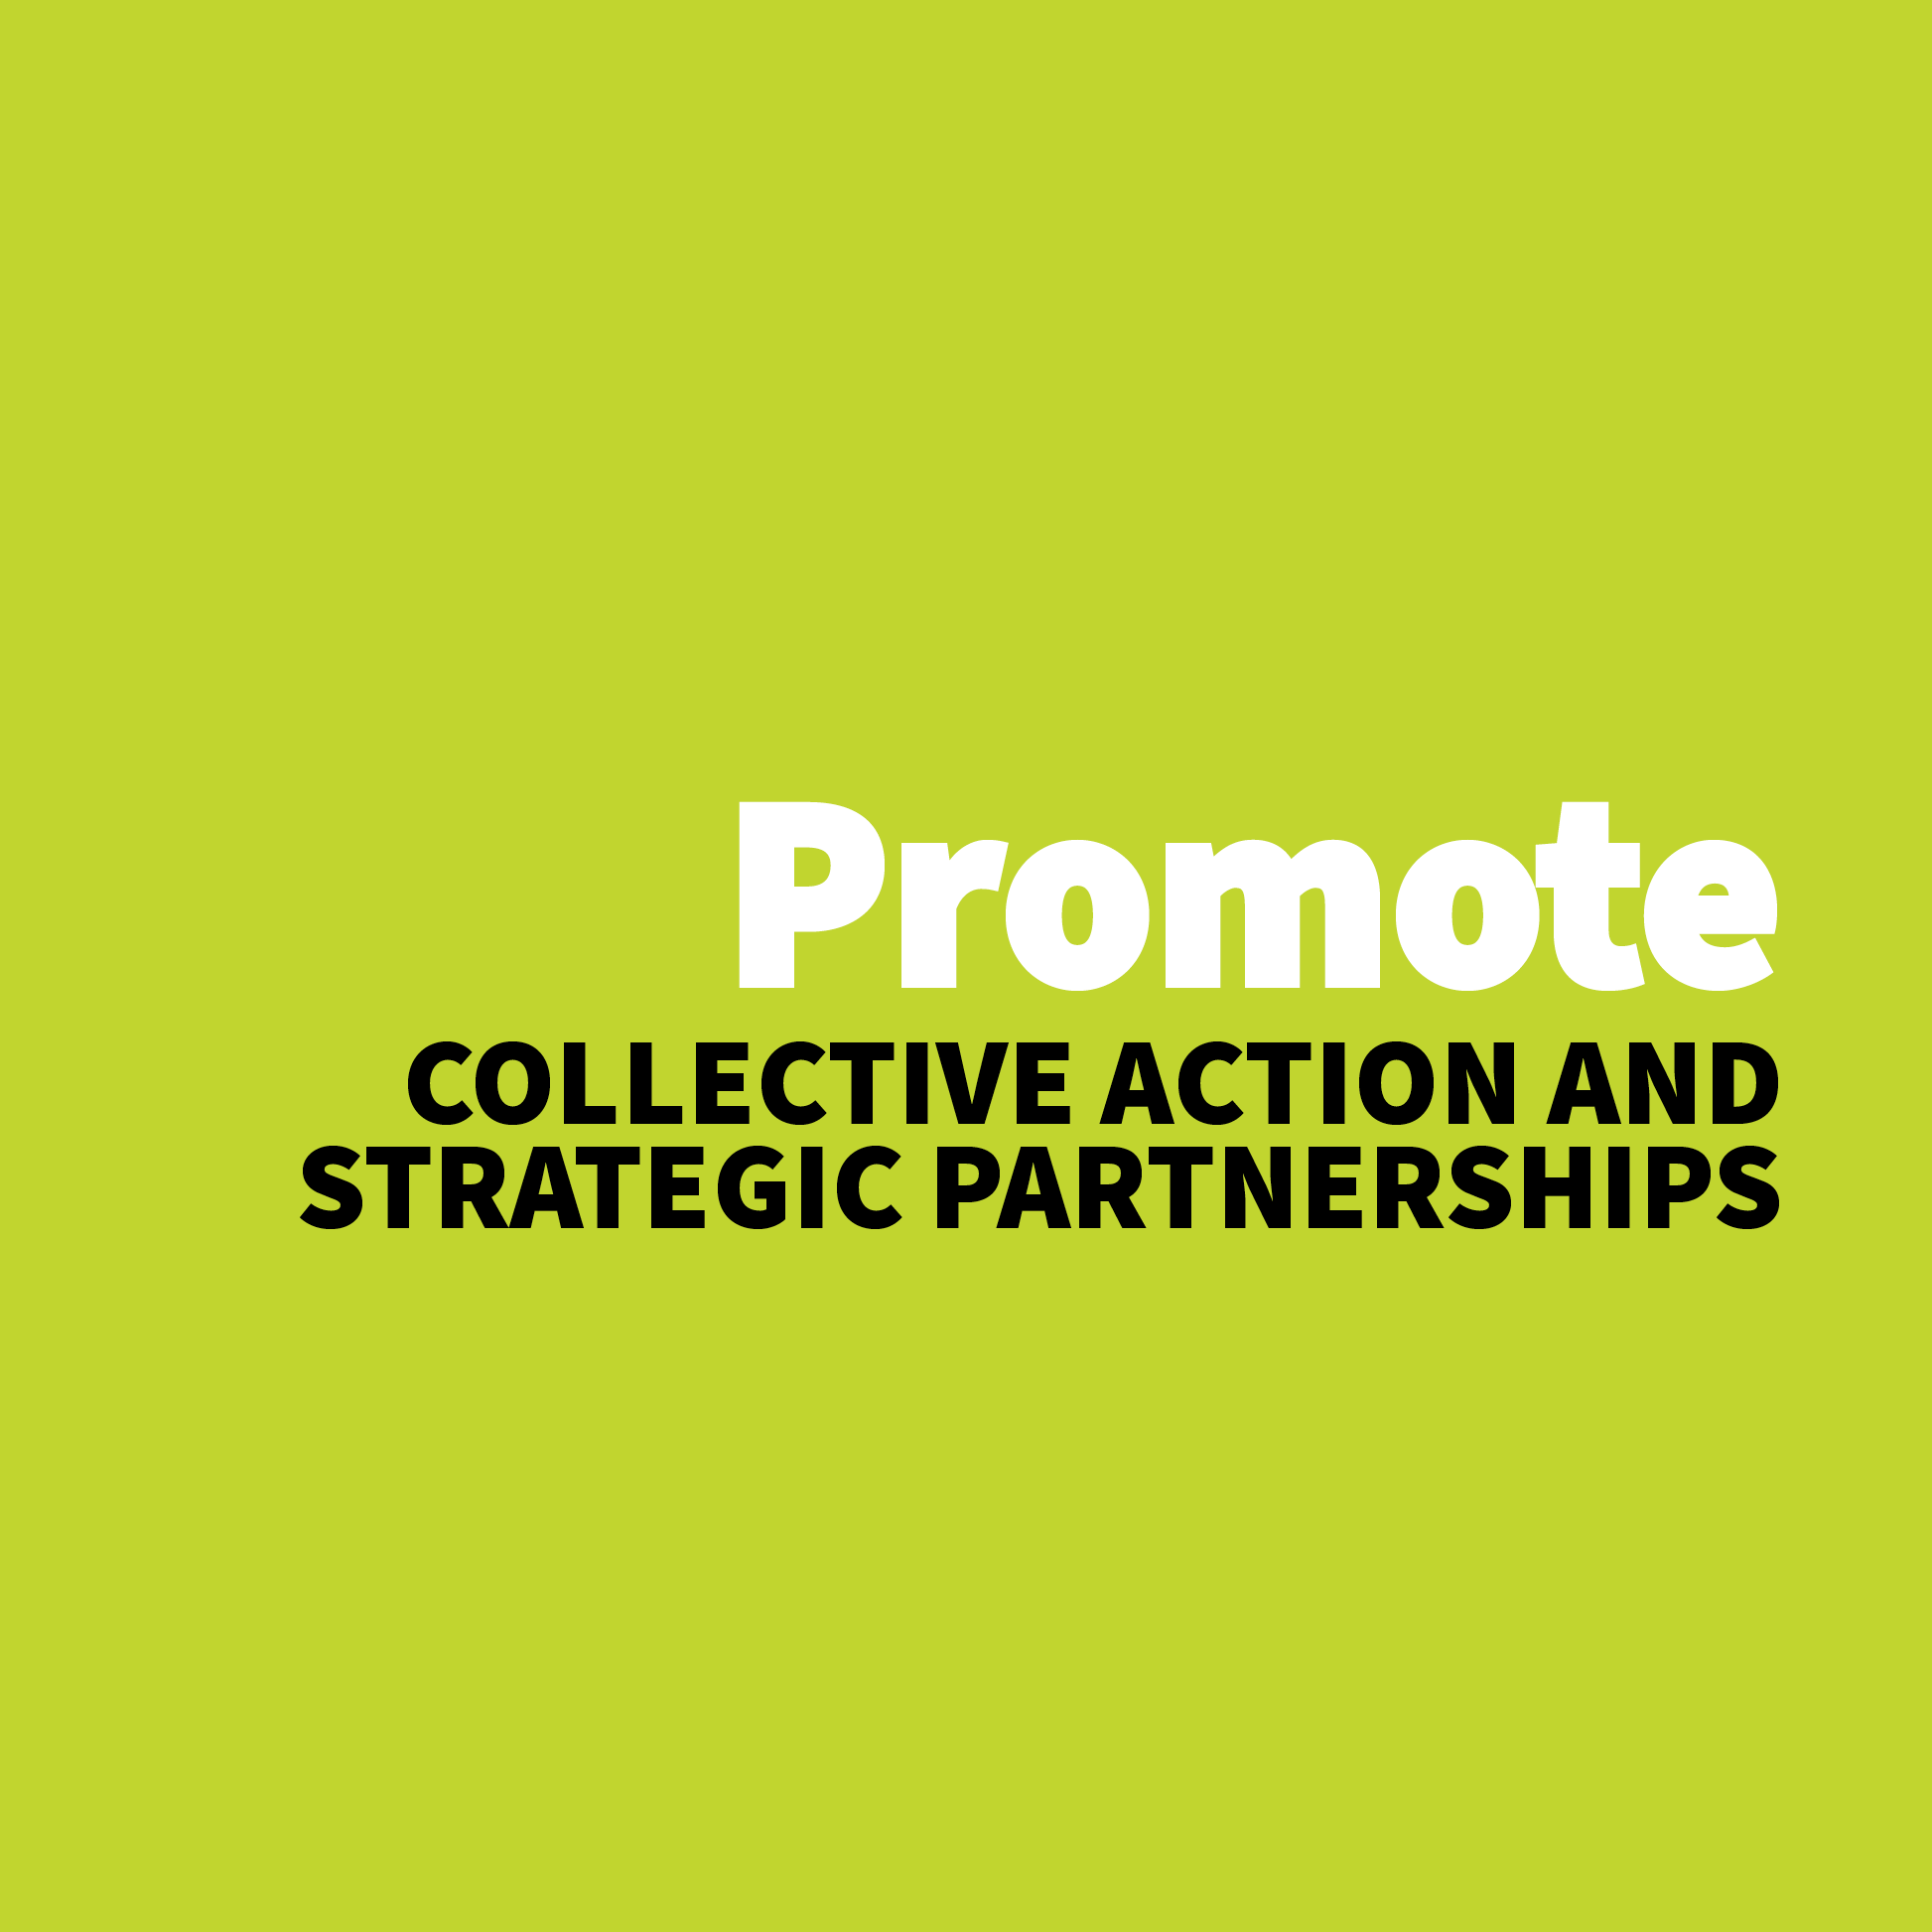 Promote Collective Action and Strategic Partnerships